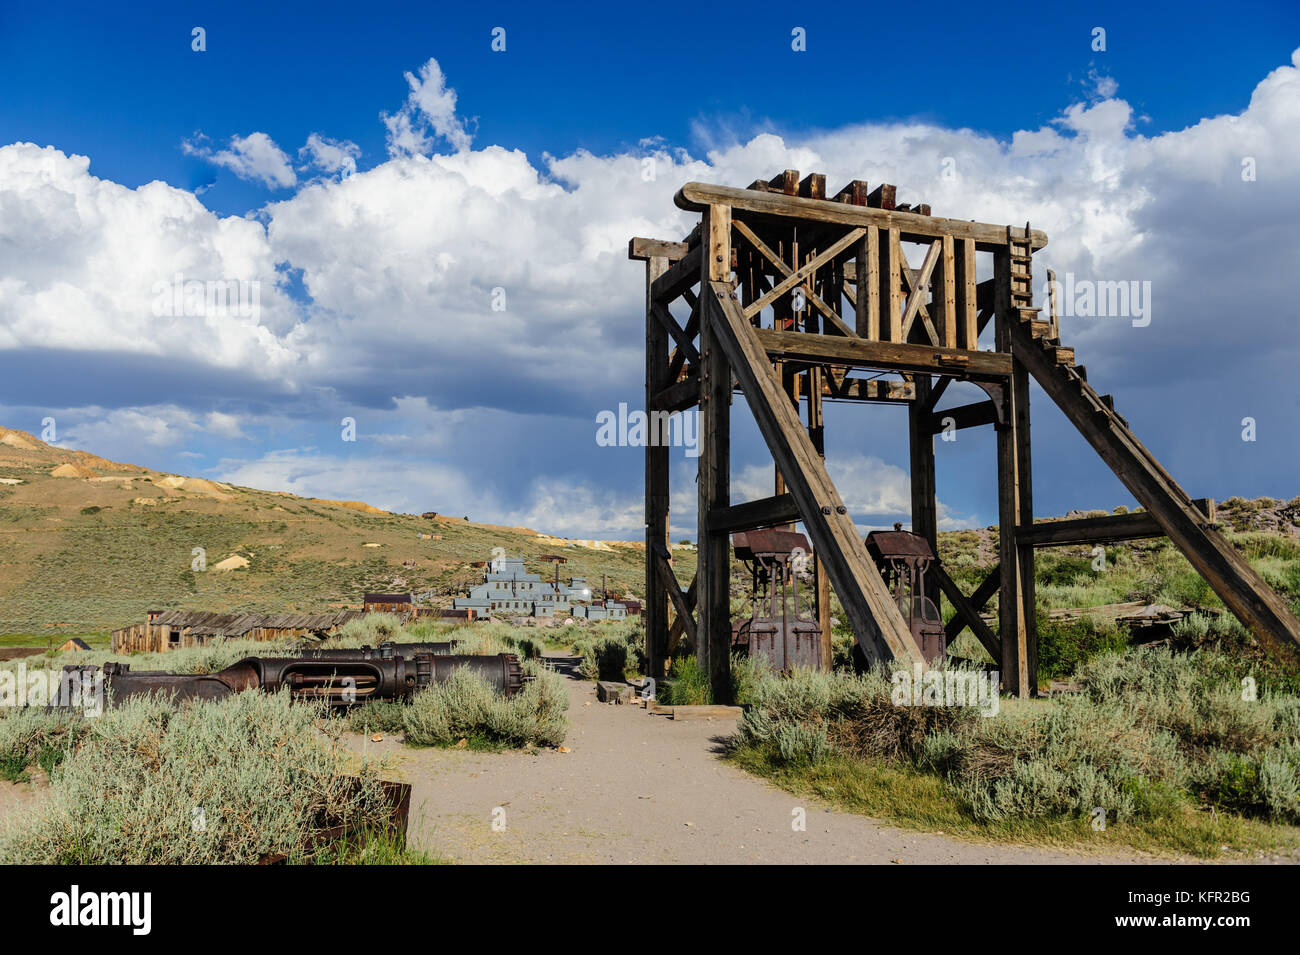 Ruined Buidlings in the Ghost Town of Bodie, California. - Stock Image